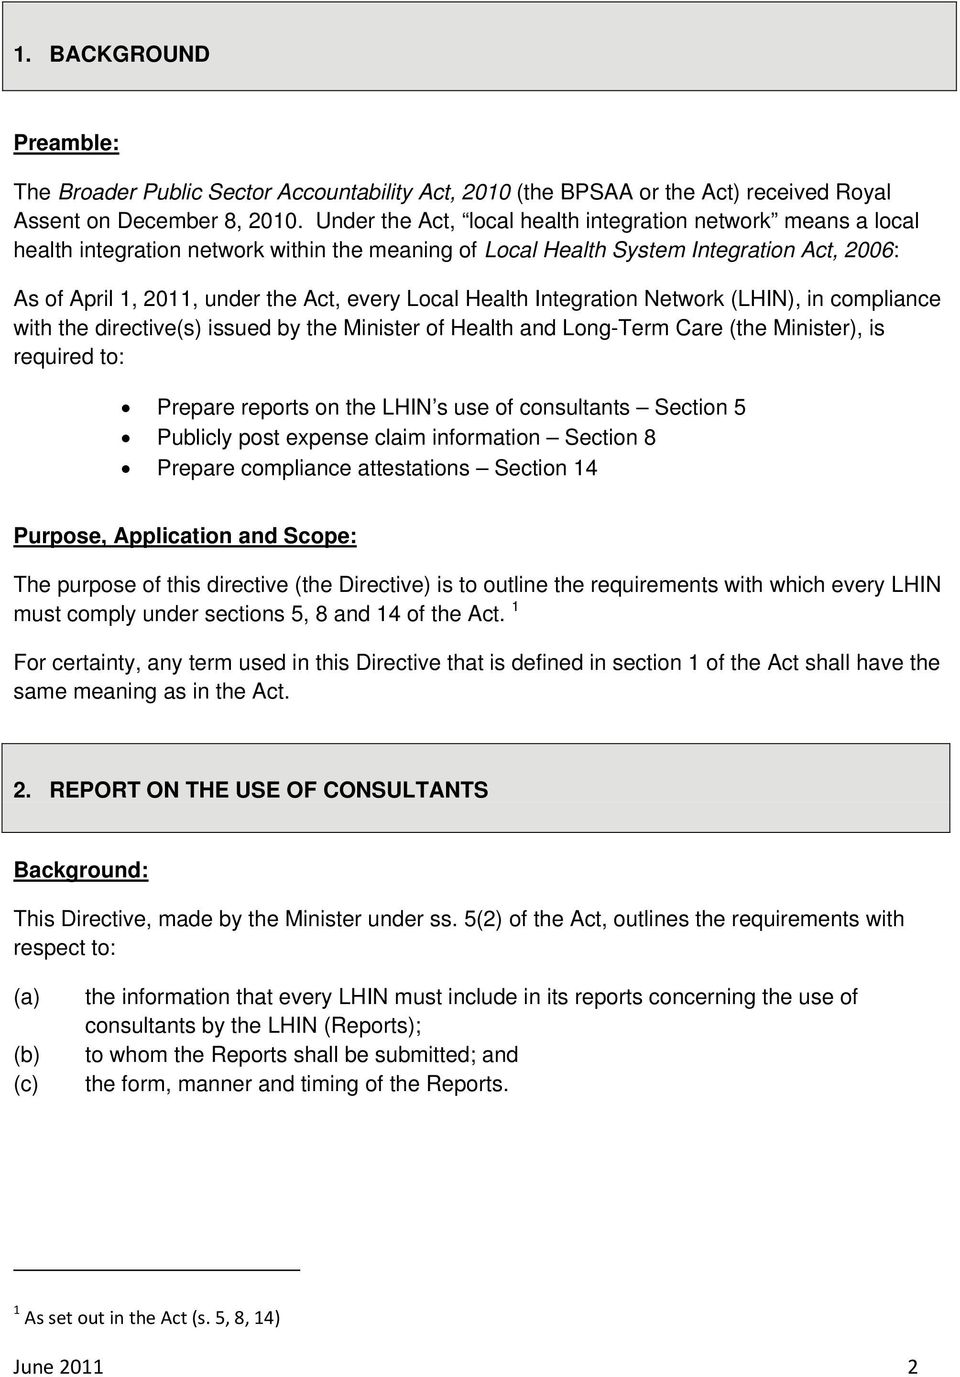 Integratin Netwrk (LHIN), in cmpliance with the directive(s) issued by the Minister f Health and Lng-Term Care (the Minister), is required t: Prepare reprts n the LHIN s use f cnsultants Sectin 5